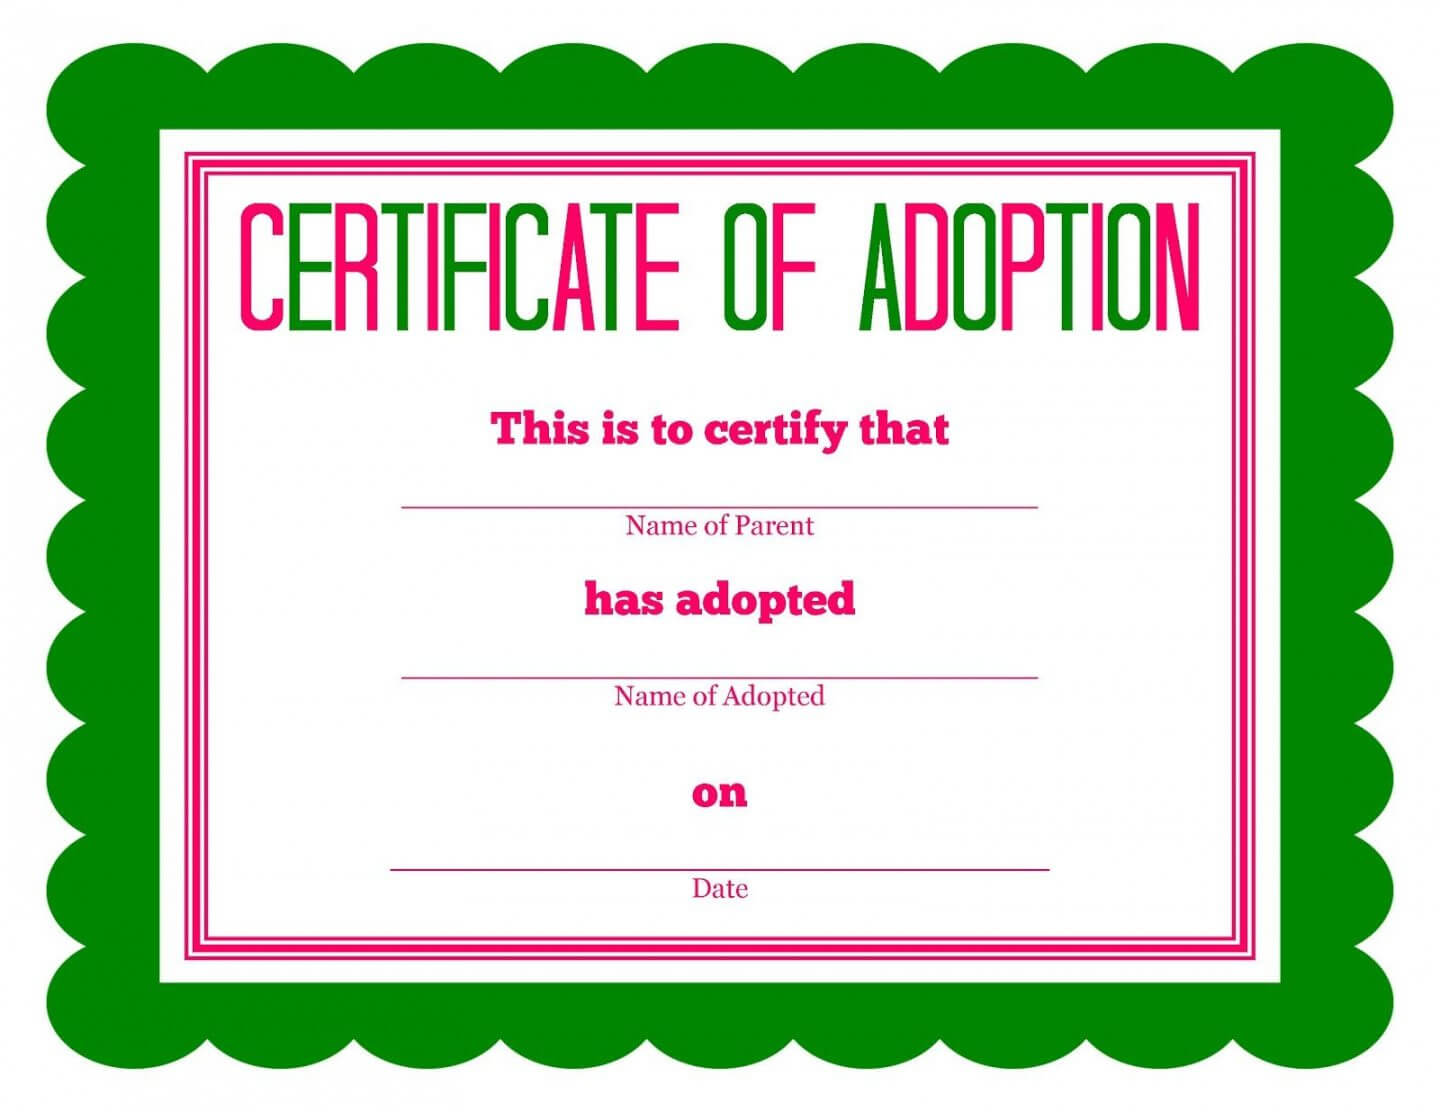 Child Adoption Certificate Template Intended For Child Adoption Certificate Template